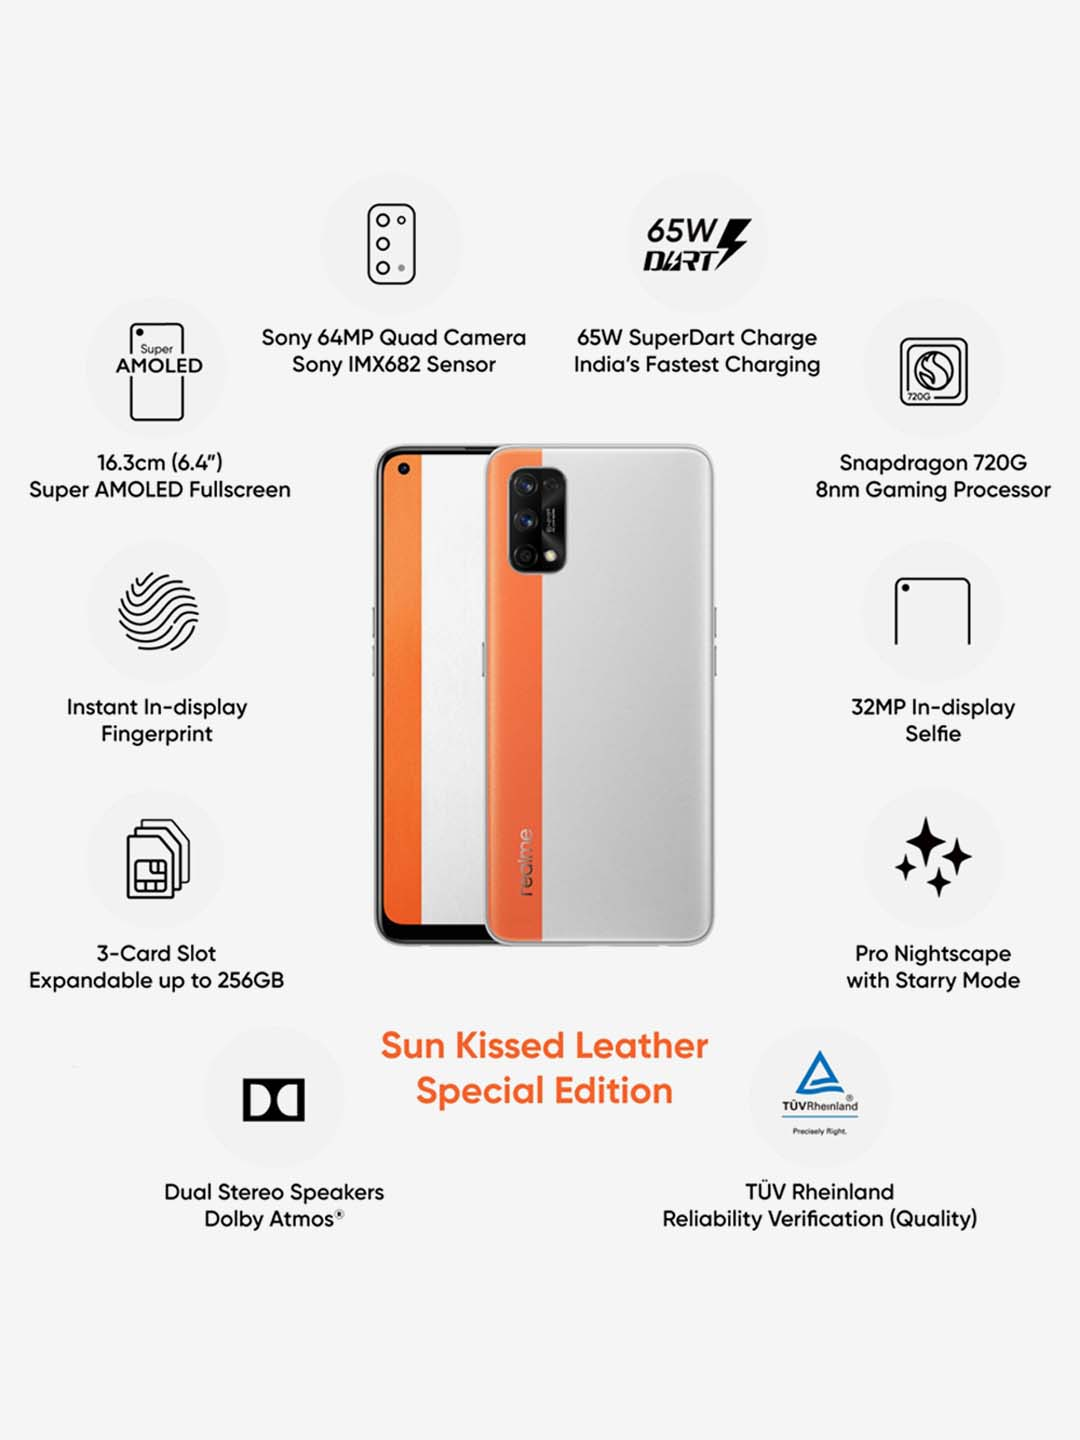 realme 7 Pro 128 GB (Sun Kissed Leather) 8 GB RAM, Dual SIM 4G from realme  at best prices on Tata CLiQ